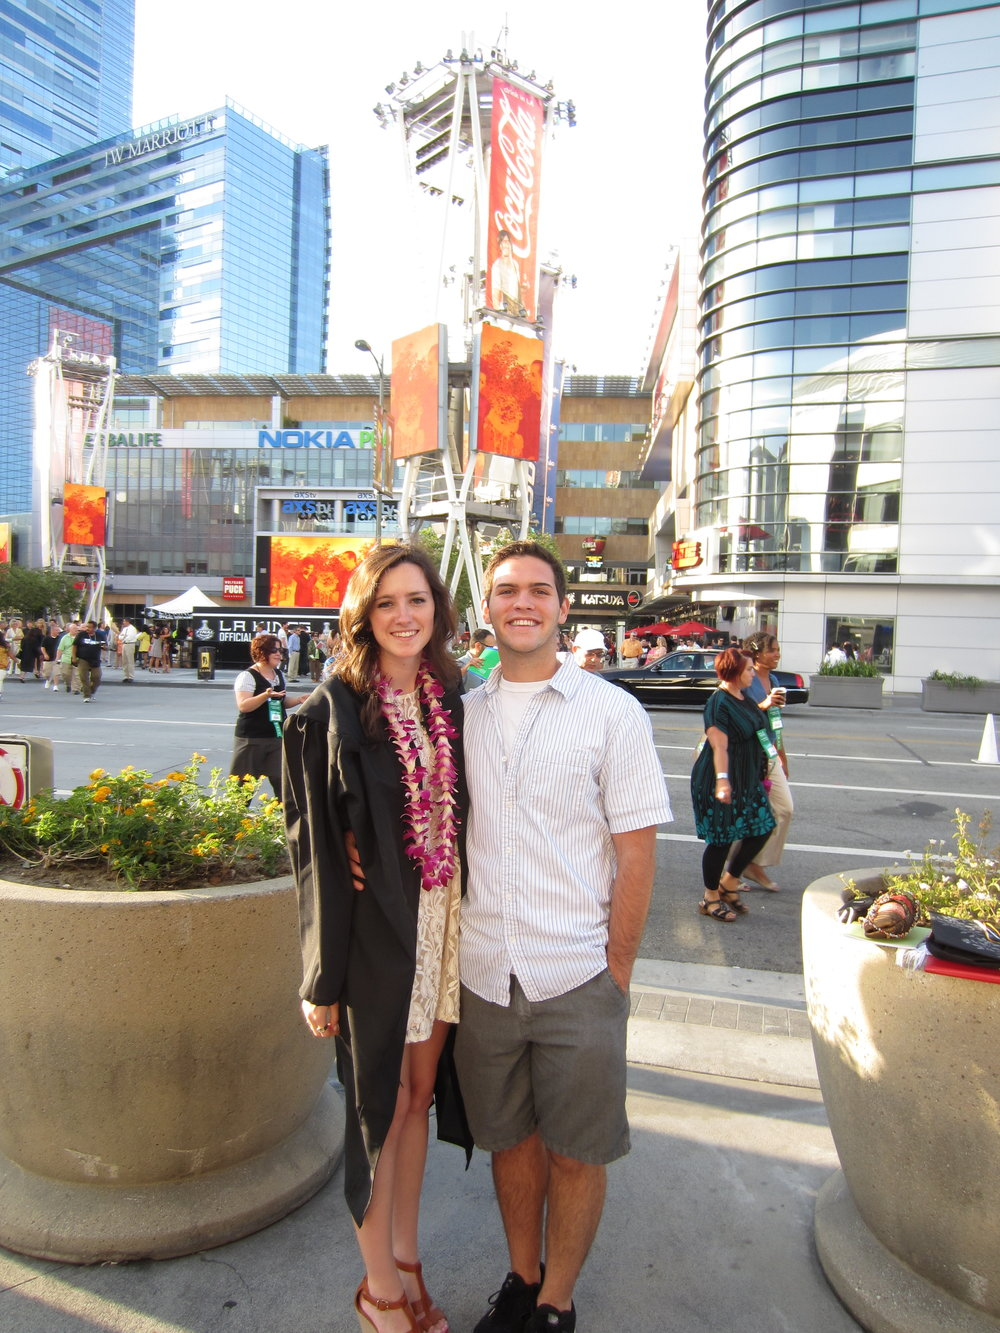 Freddy and I at my graduation from FIDM in Downtown LA in June 2012! We look so young ;)